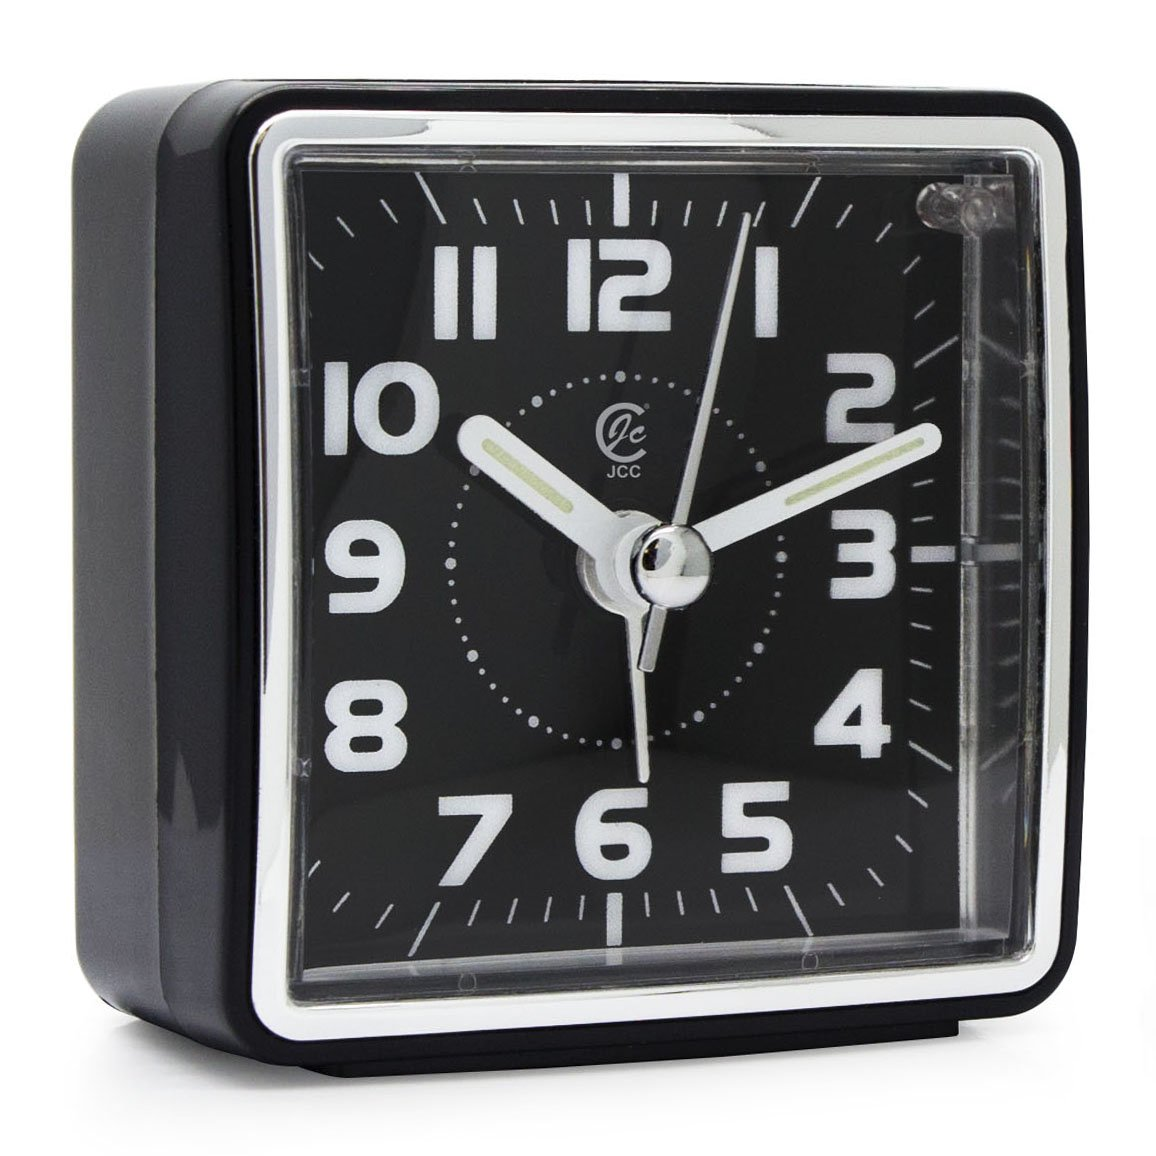 JCC Mini Travel Analog Alarm Clock, Non-Ticking - Battery Operated, Quartz Clock with 5 min Snooze - Loud Ascending Sound - Alarm Clocks with Night Light for Traveling, Backpacking, and Camping - Square Black